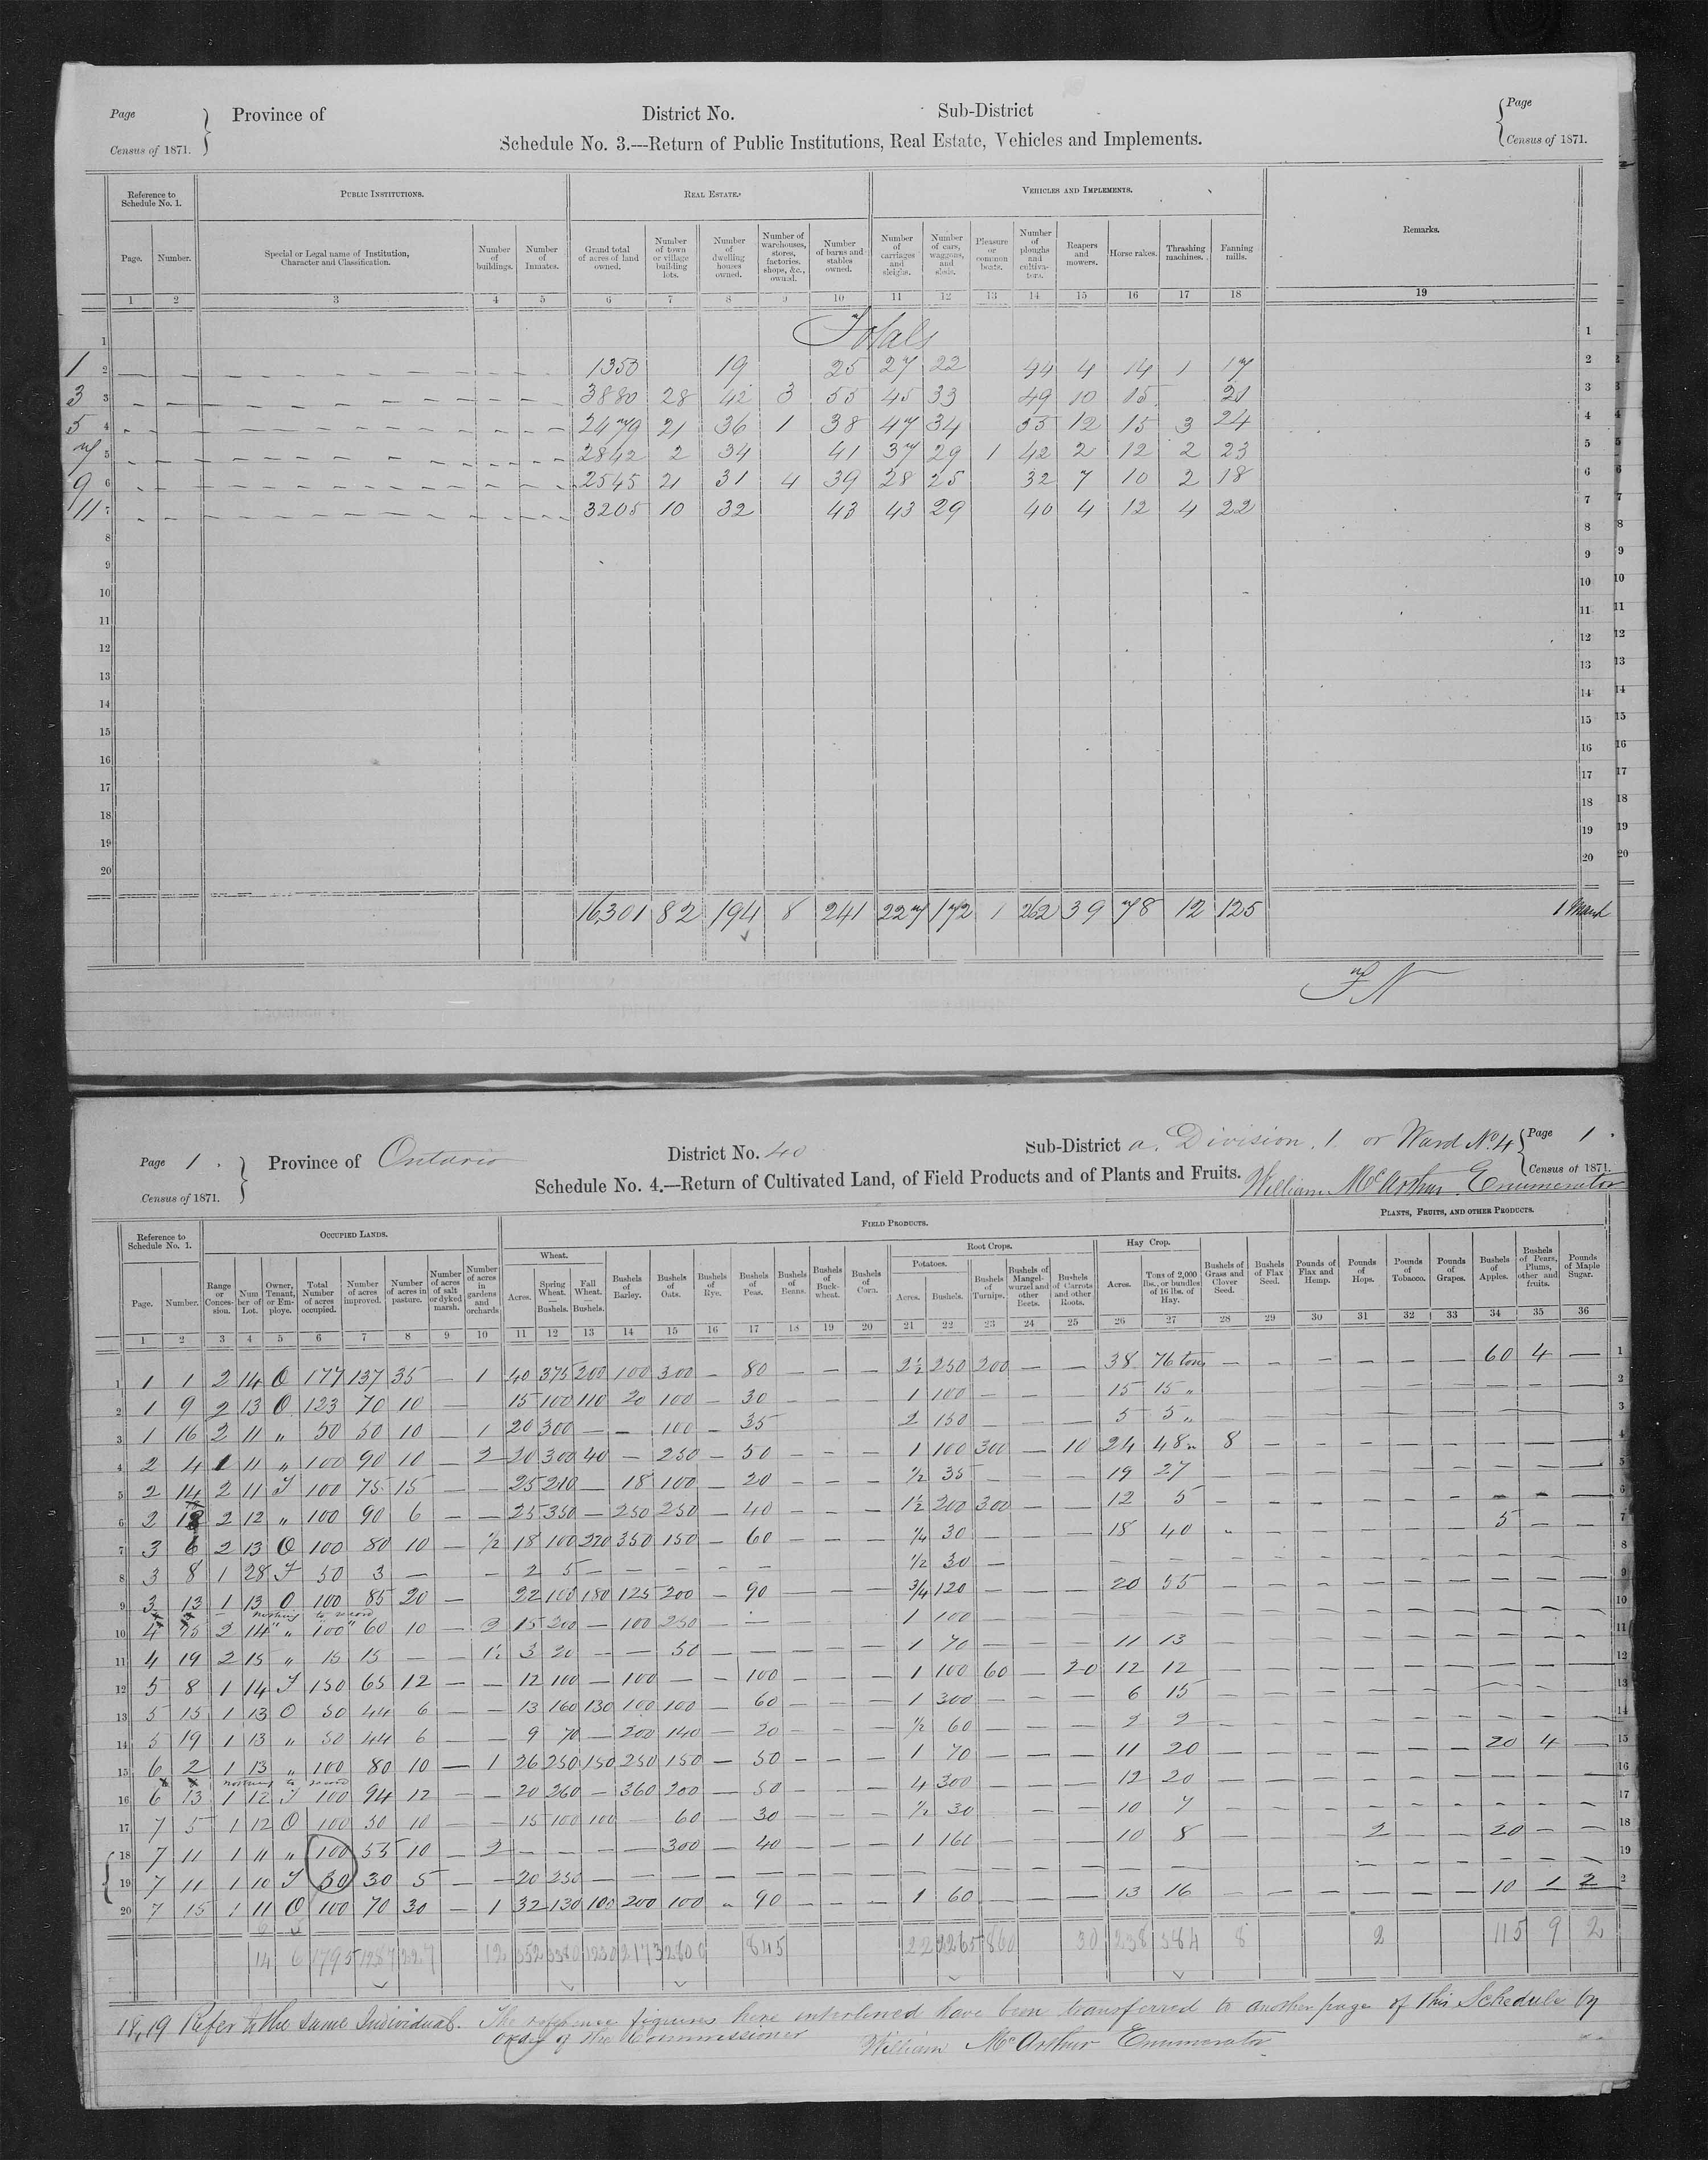 Title: Census of Canada, 1871 - Mikan Number: 142105 - Microform: c-9958